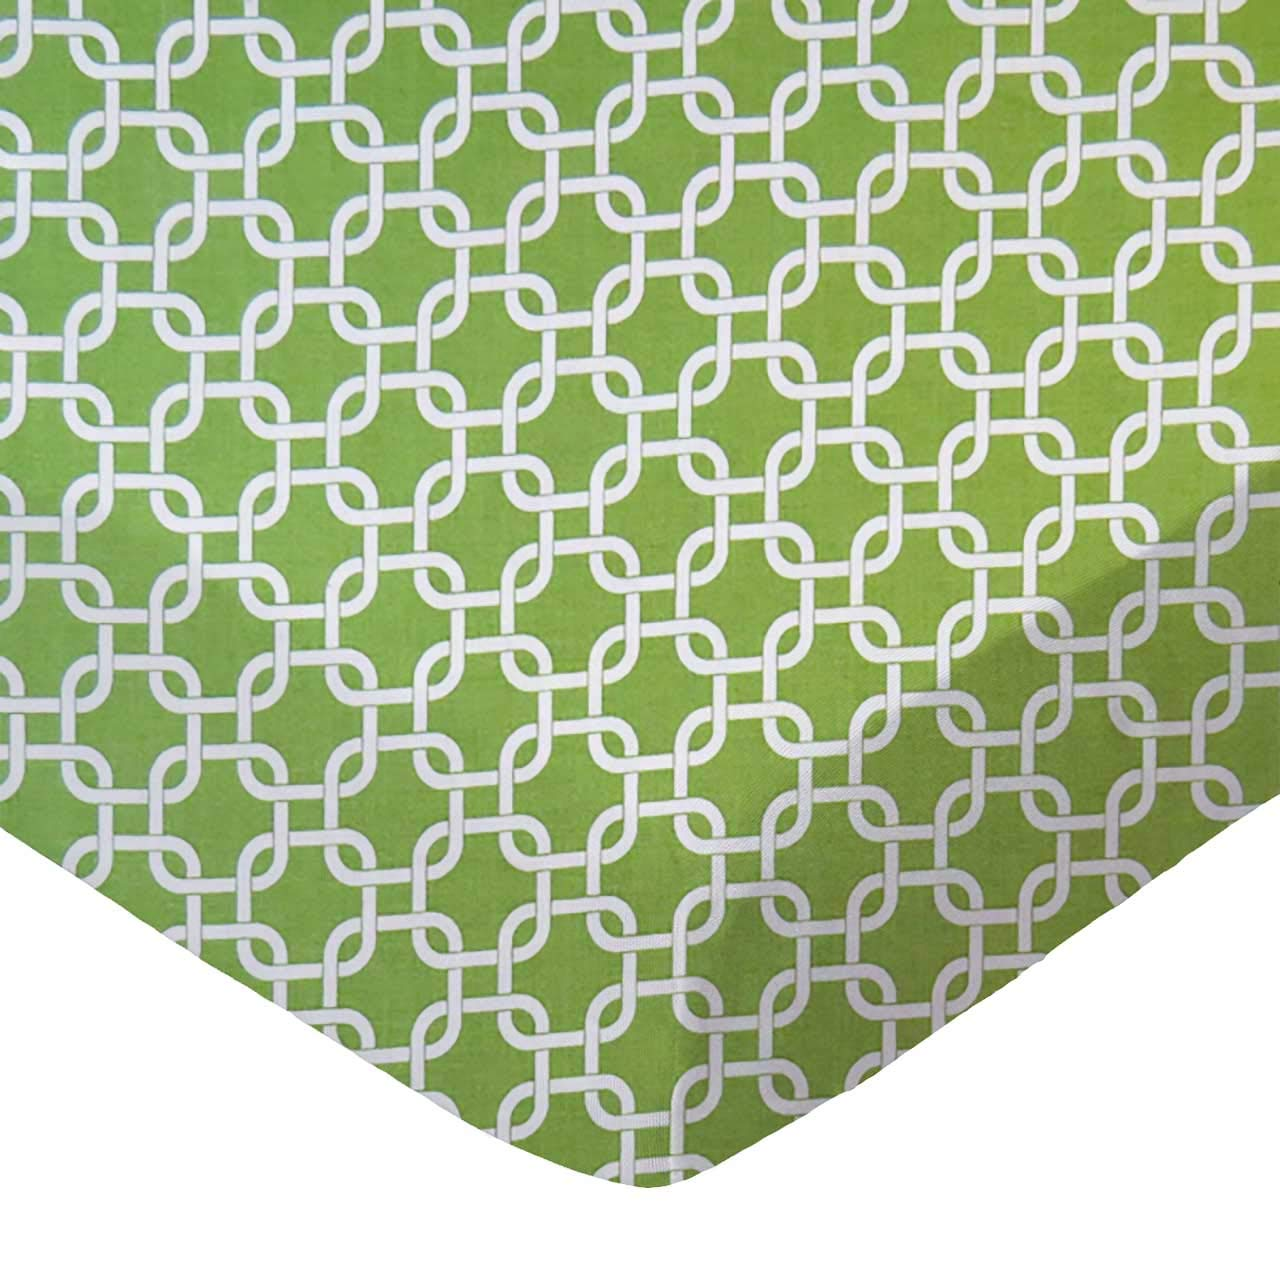 SheetWorld Fitted Cradle Sheet - Citrus Links - Made In USA by sheetworld   B00NB25XAG